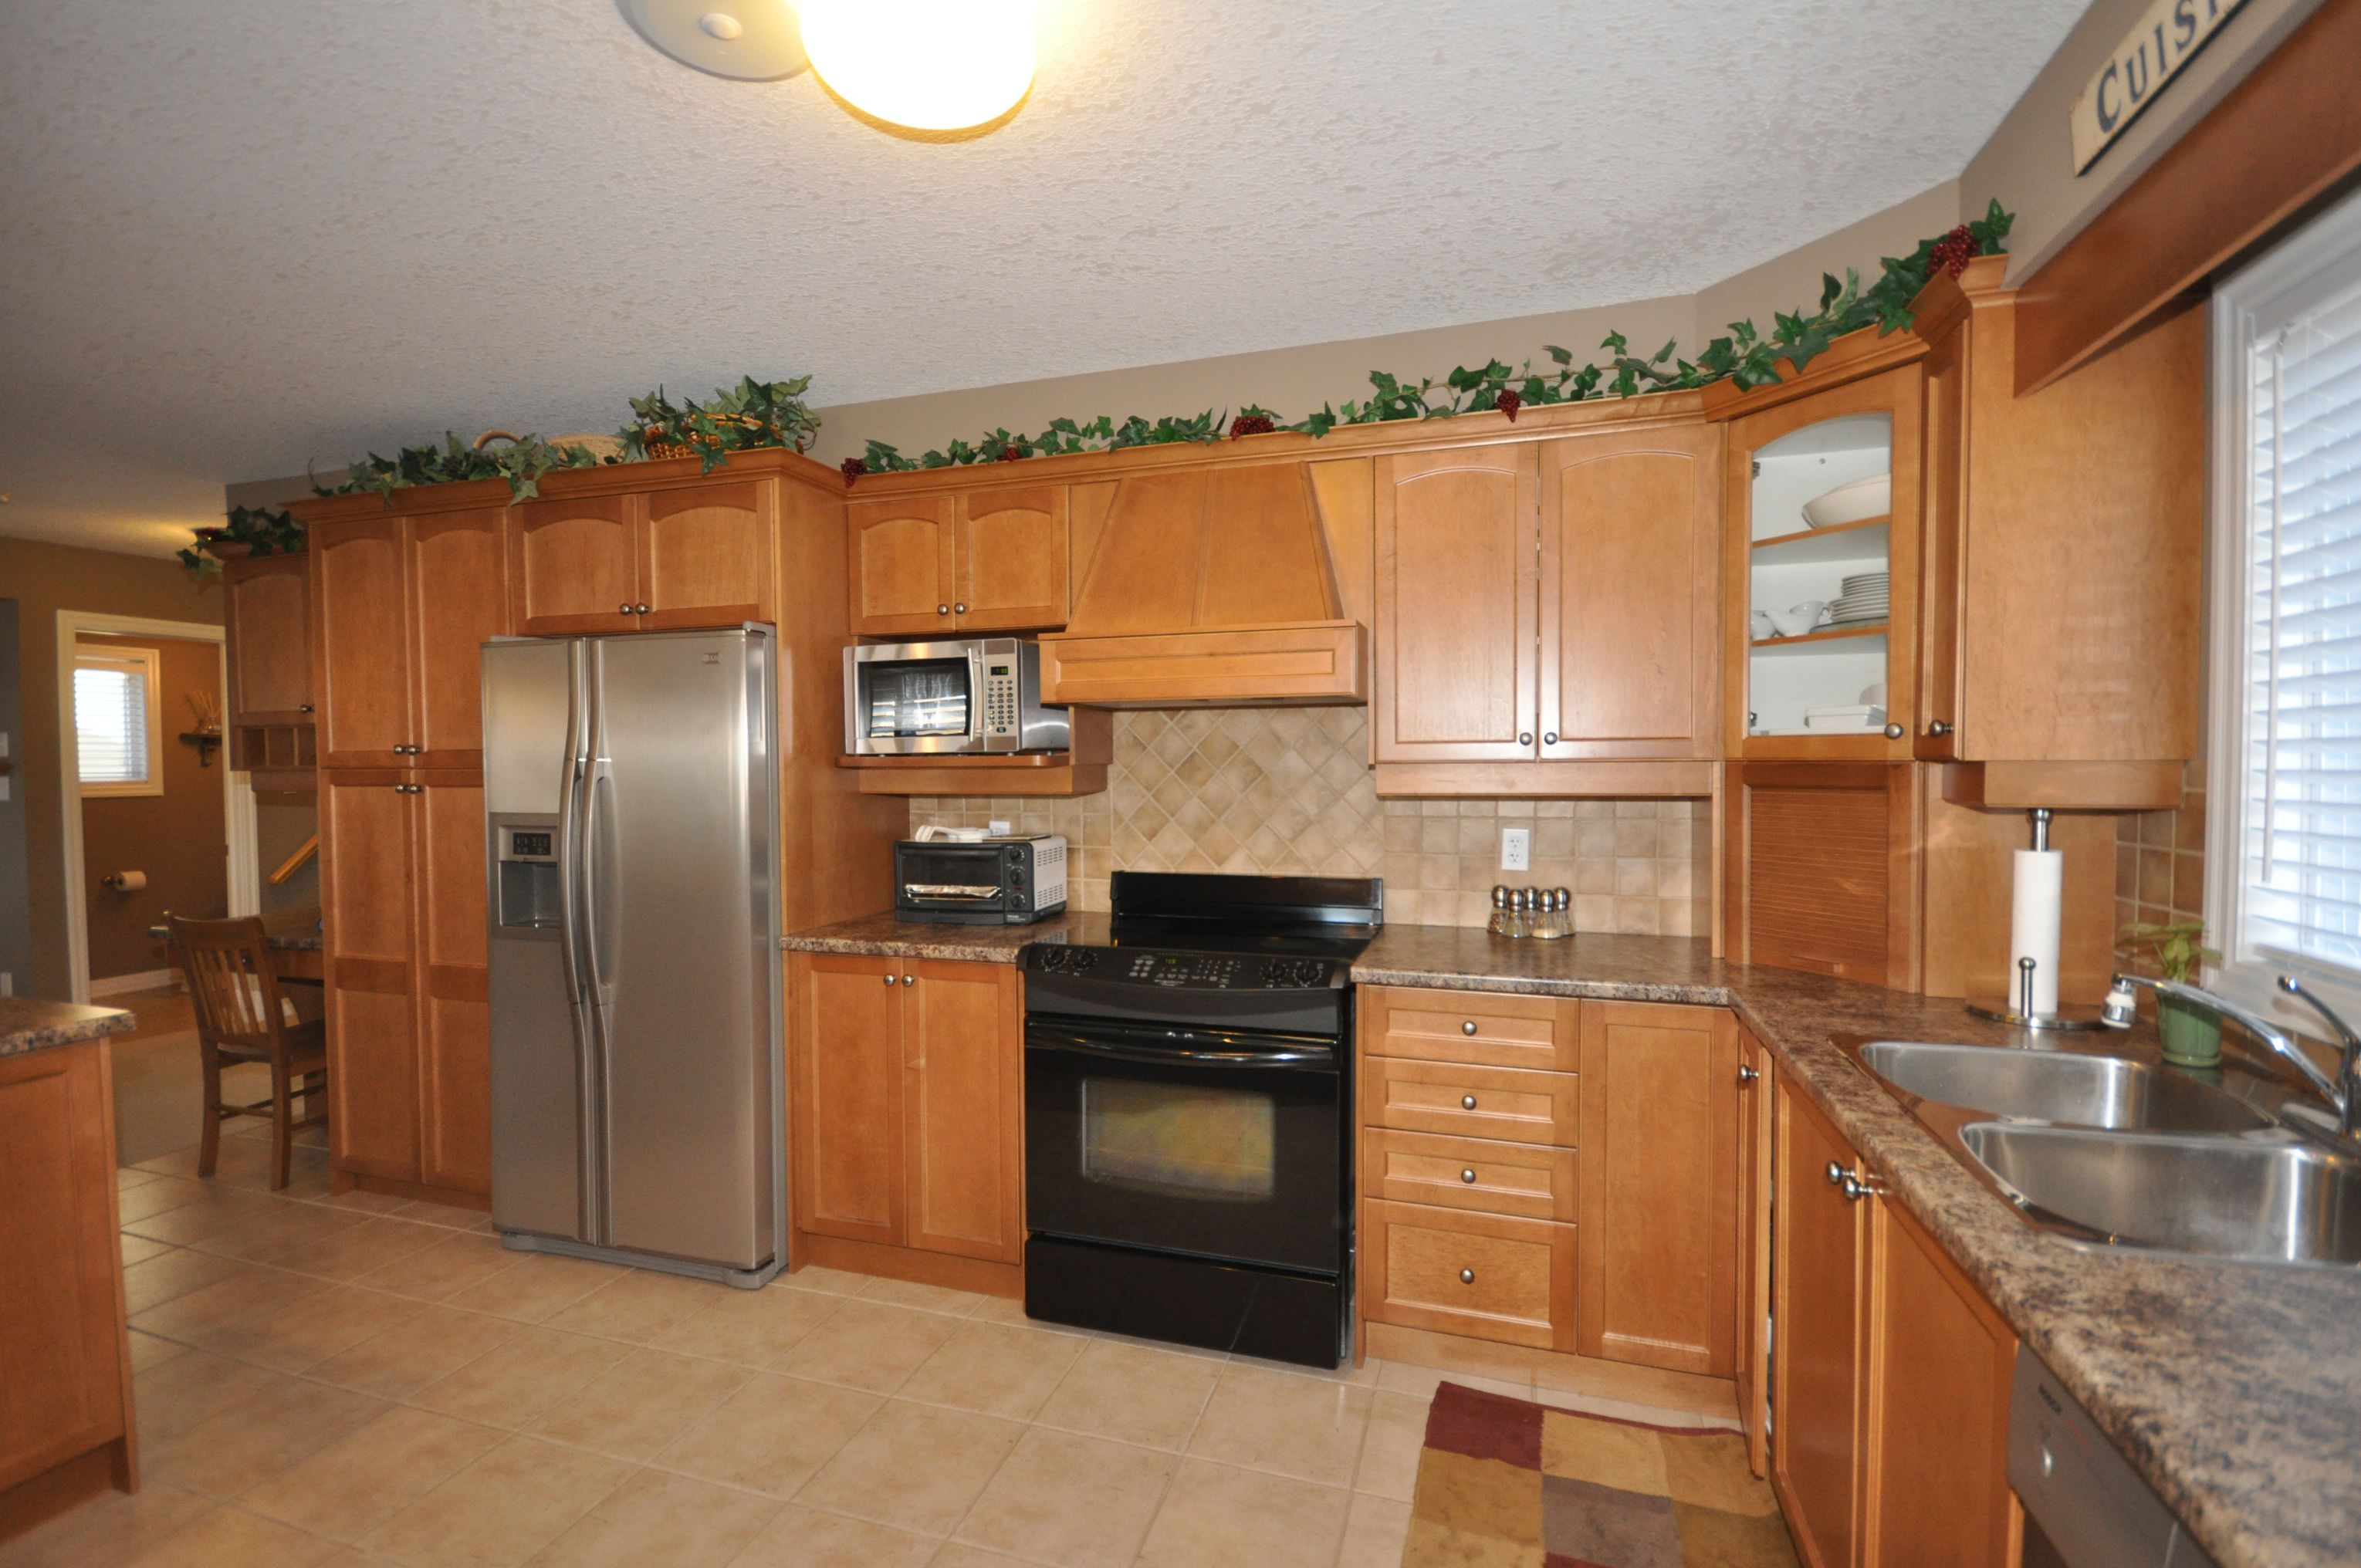 Spacious kitchen has ceramic backsplash & flooring